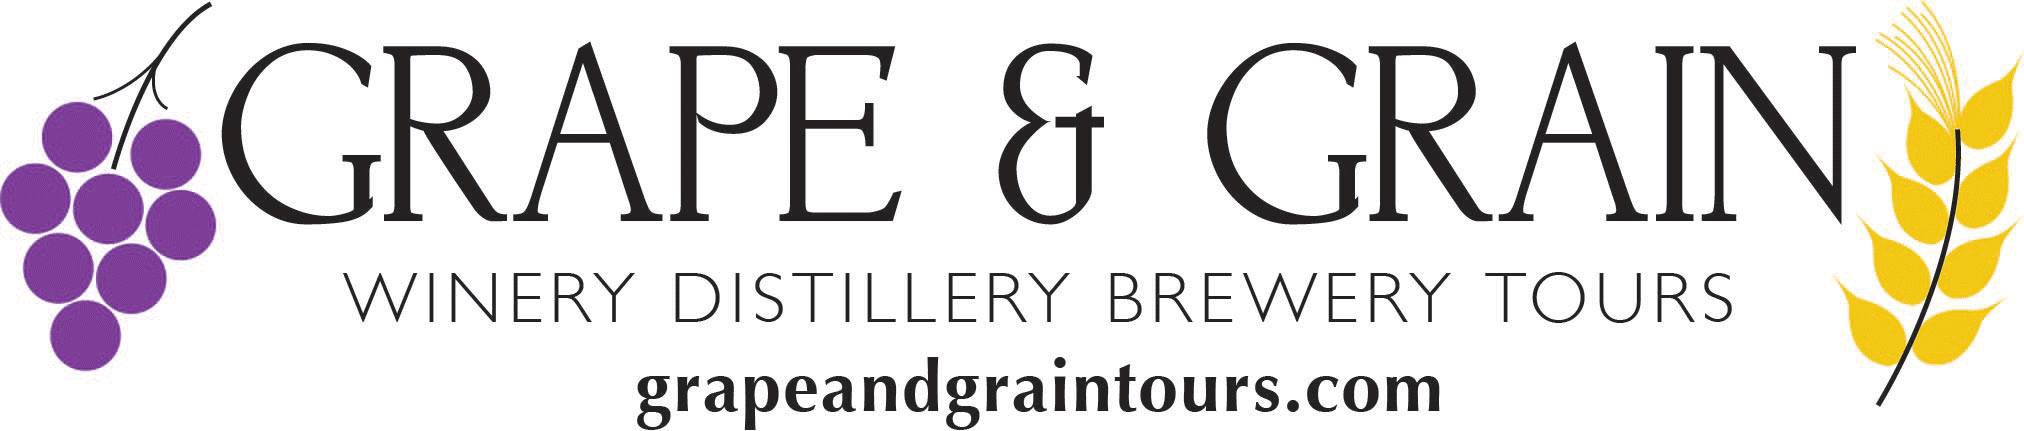 Festival transportation brought to you by  Grape and Grain . They will be running shuttles internally to and from out lots, Make sure you check out their tours!